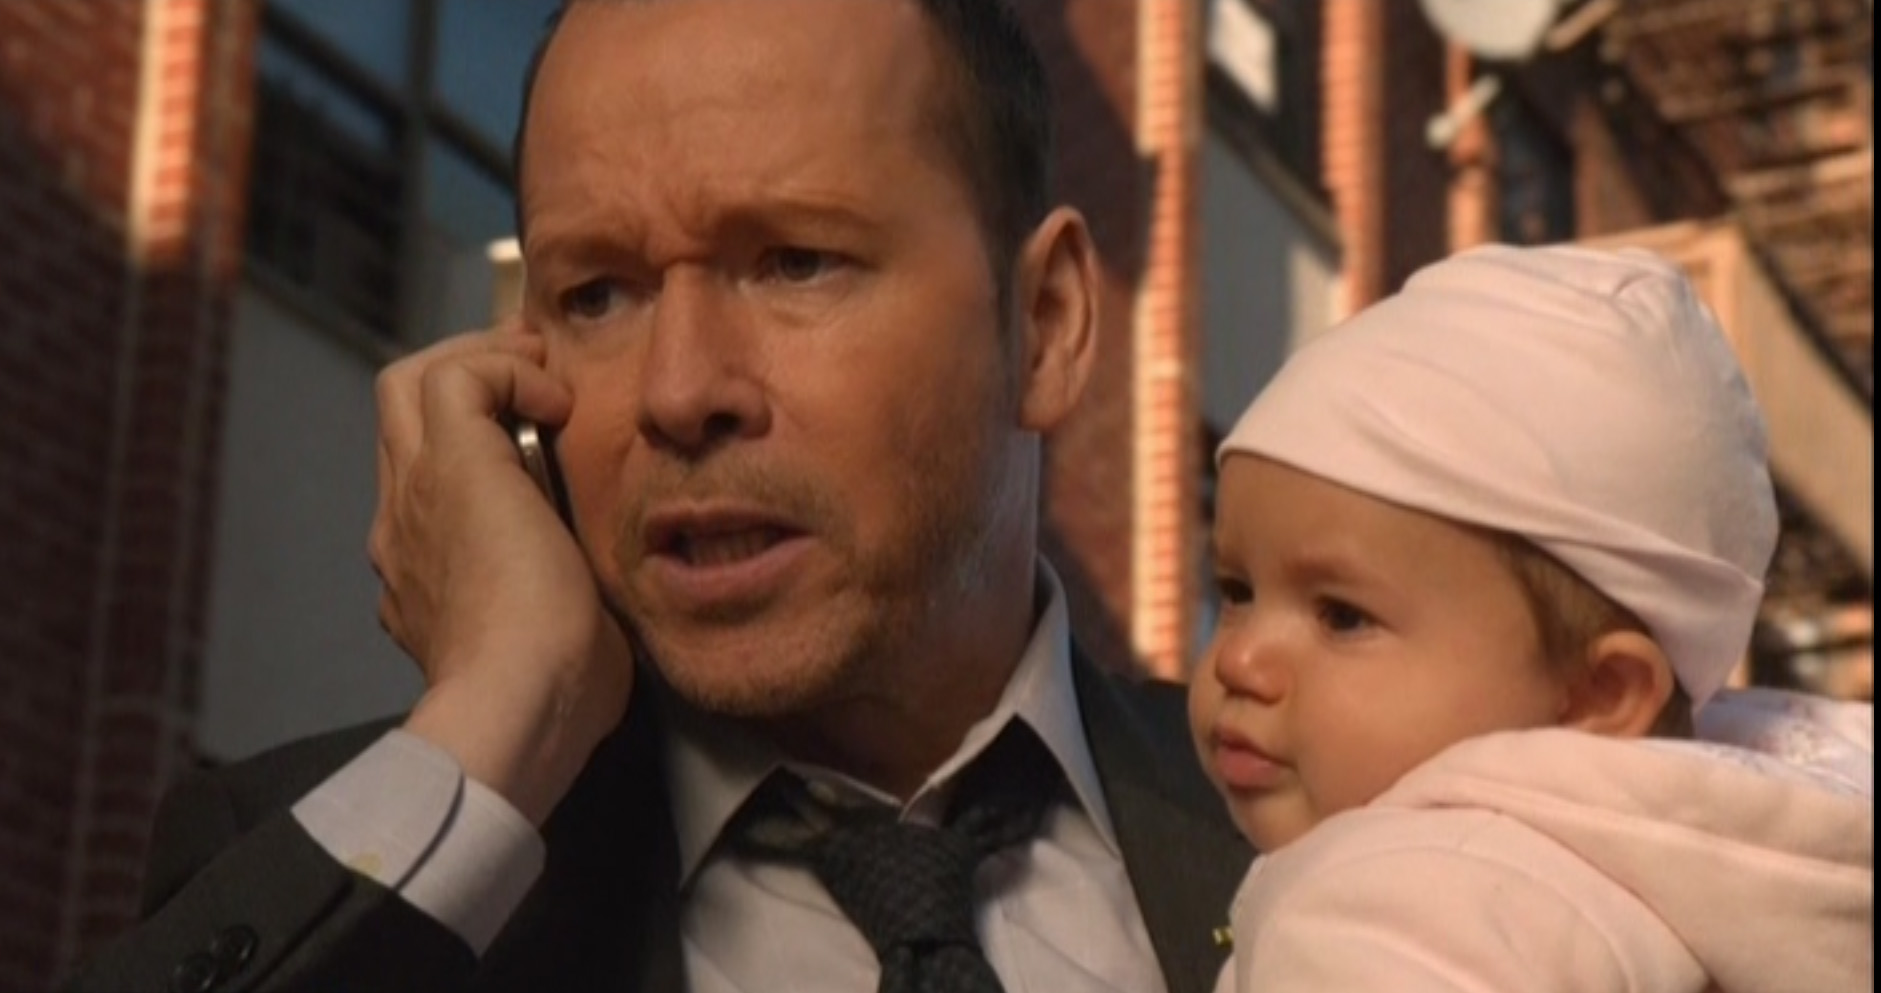 That's not Danny's baby ...  but how cute is that?